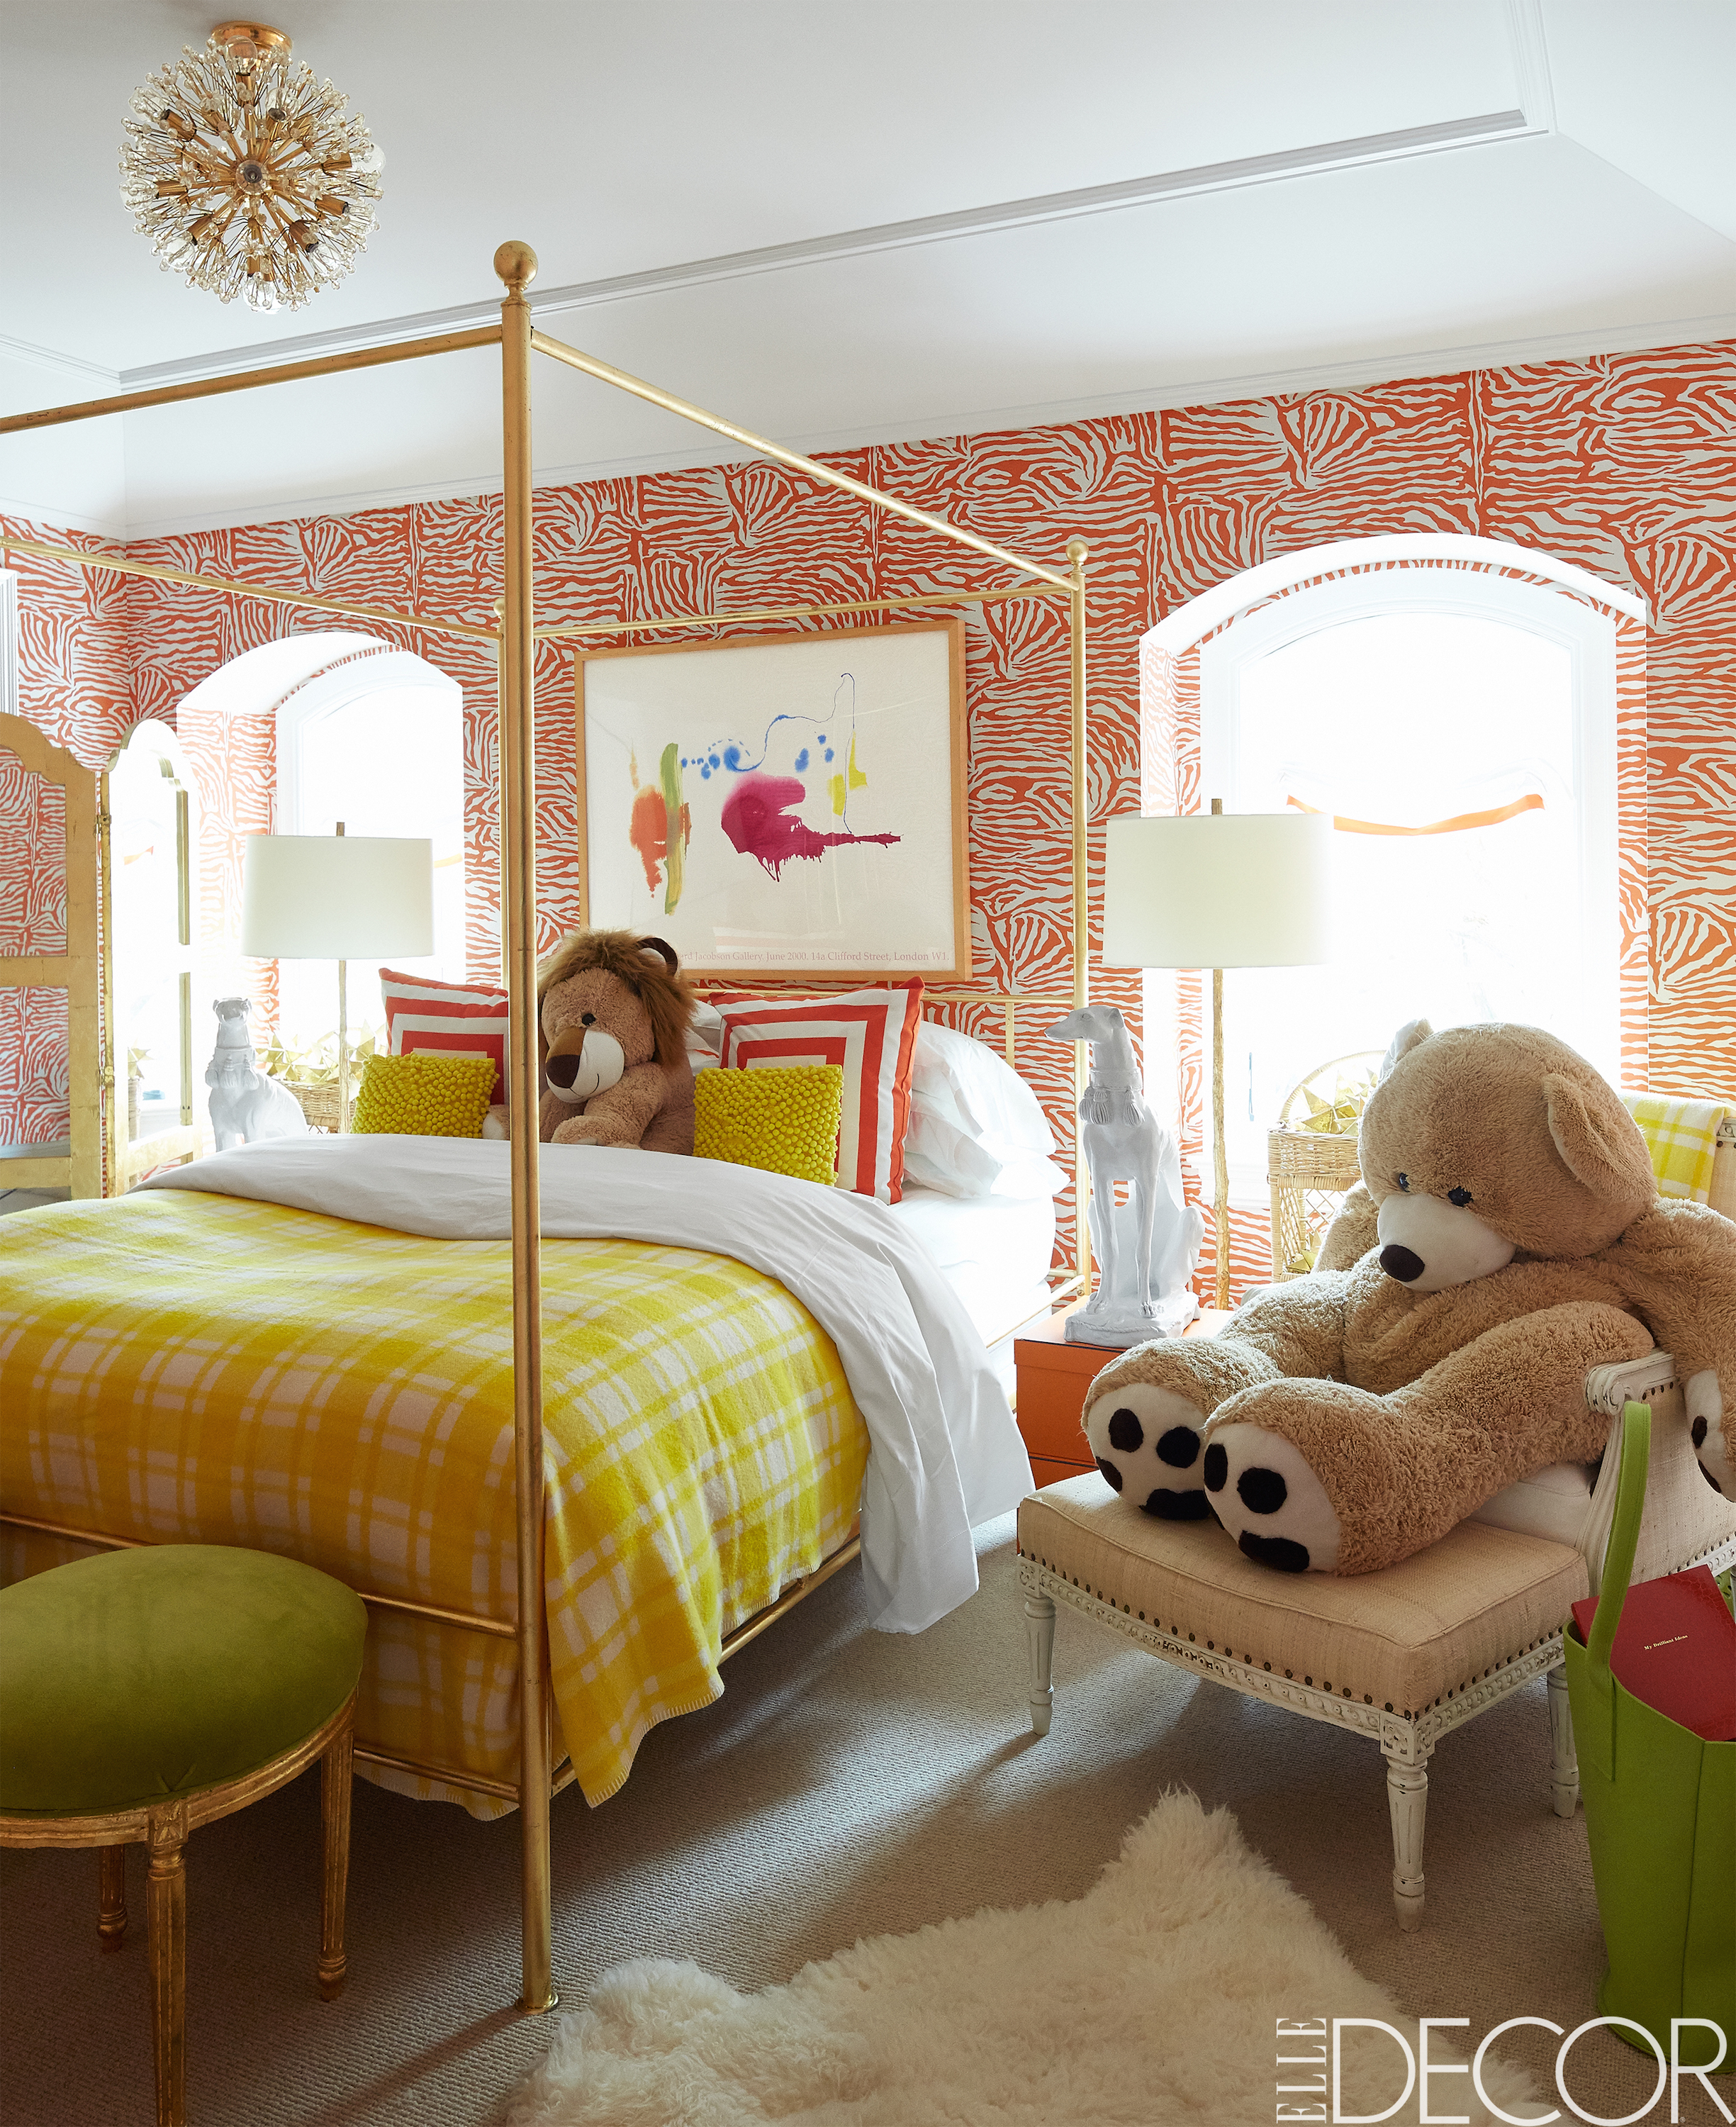 10 Girls Bedroom Decorating Ideas - Creative Girls Room ... on Girls Bedroom Ideas  id=93881